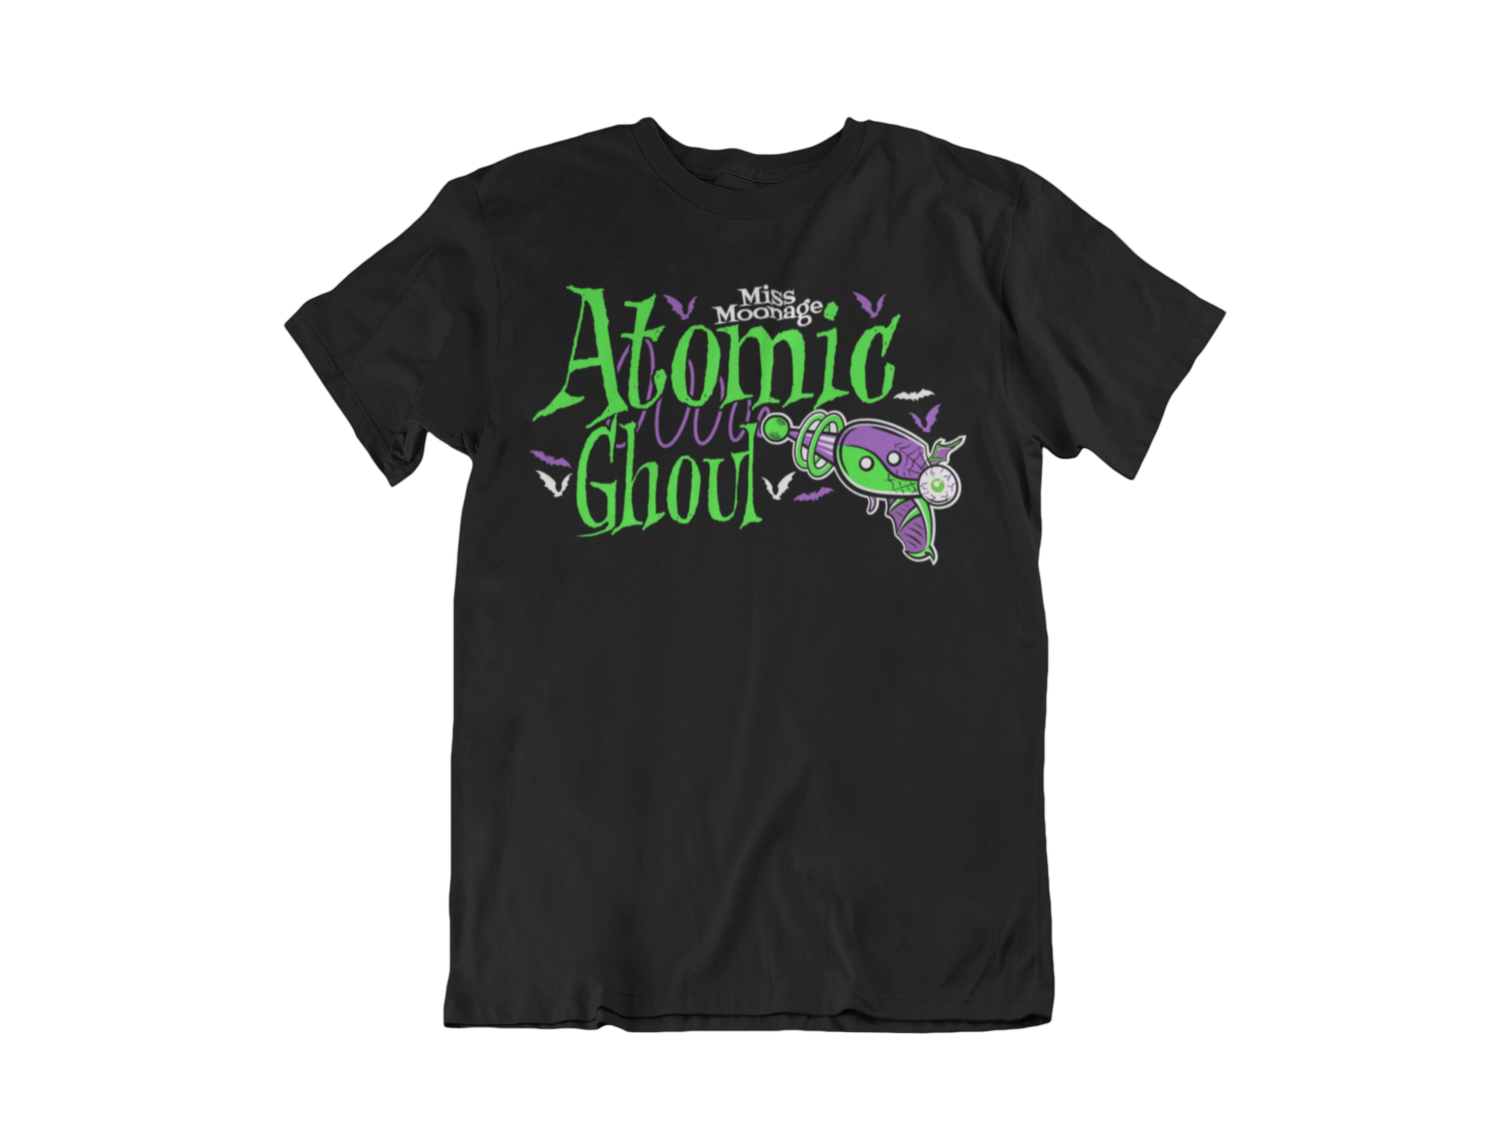 ATOMIC GHOUL by MISS MOONAGE tshirt for MEN